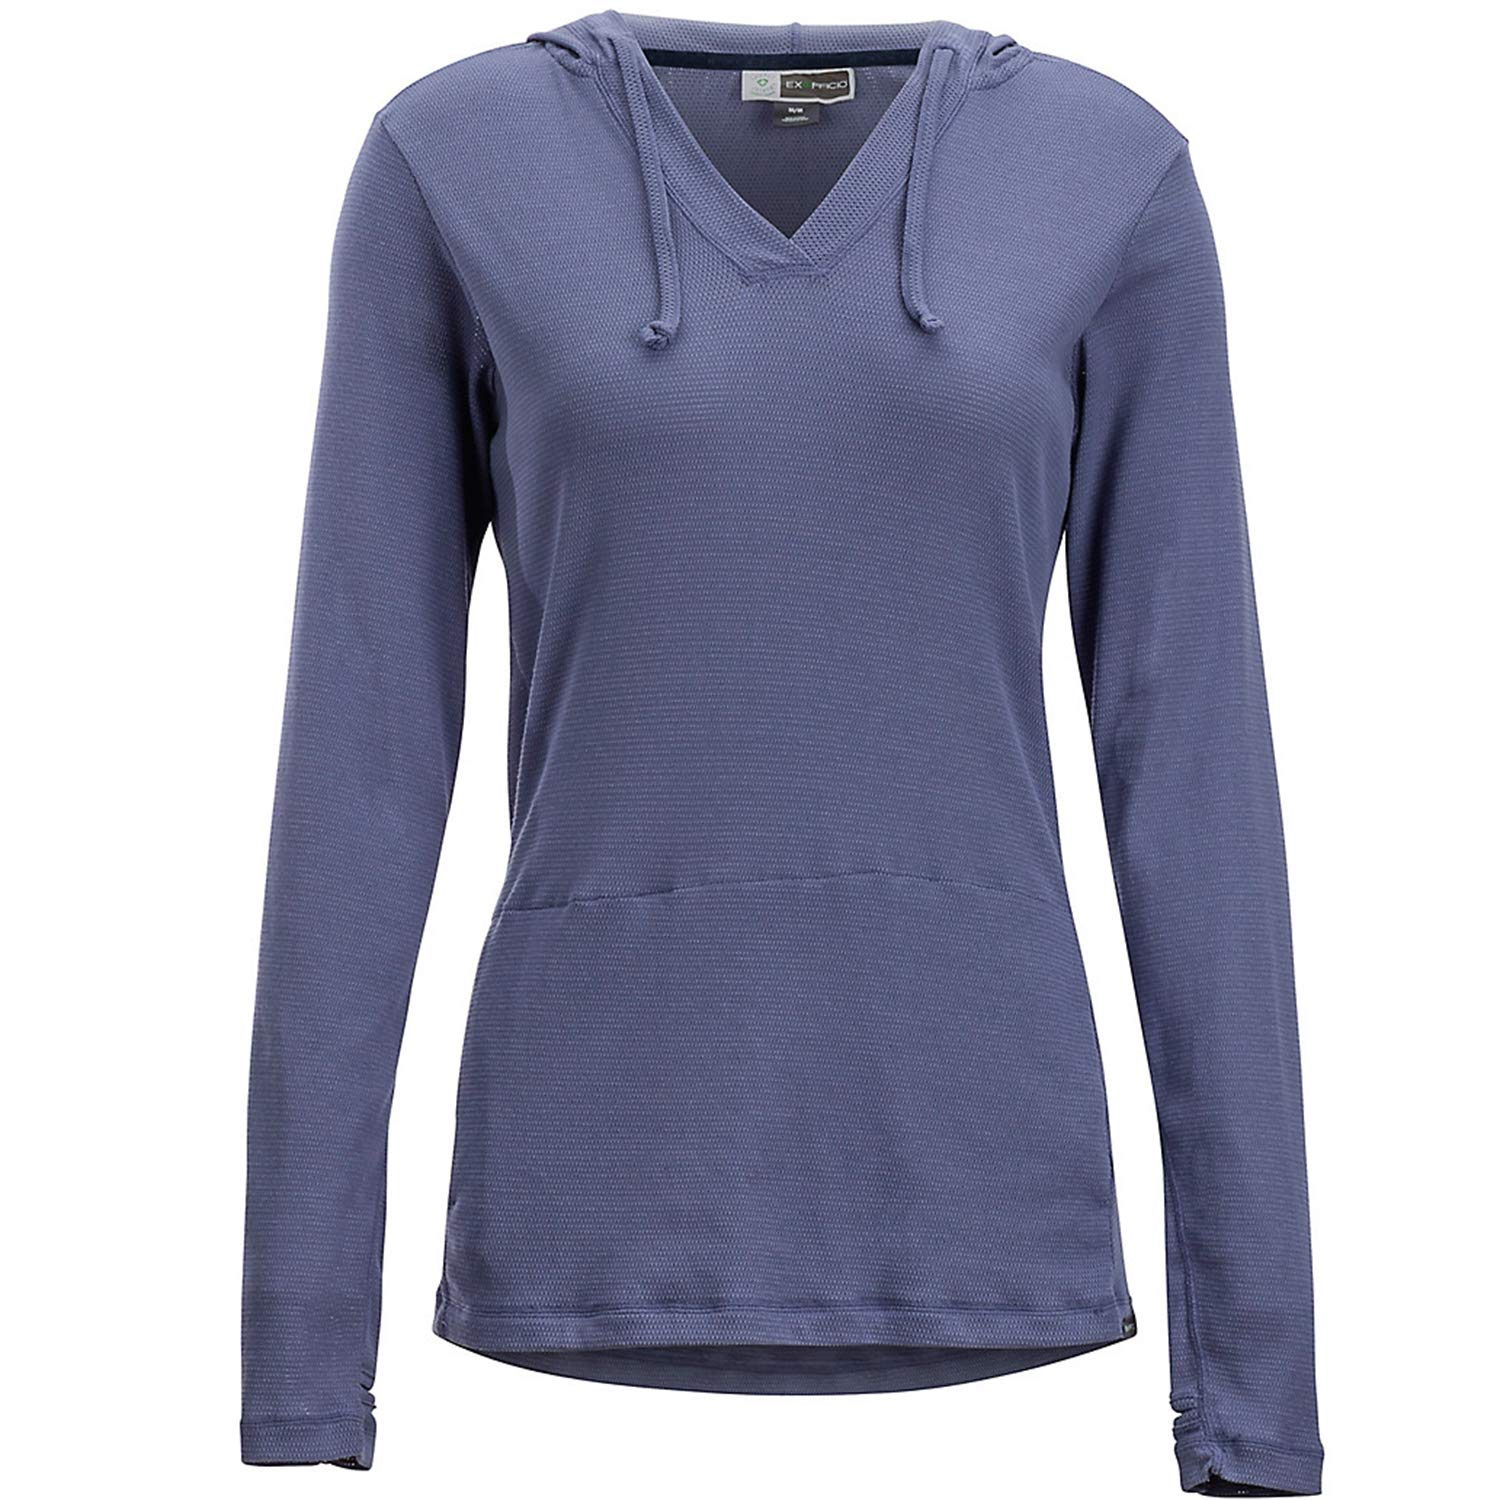 ExOfficio Women's BugsAway Lm Hoody, Blue Heron, X-Large by ExOfficio